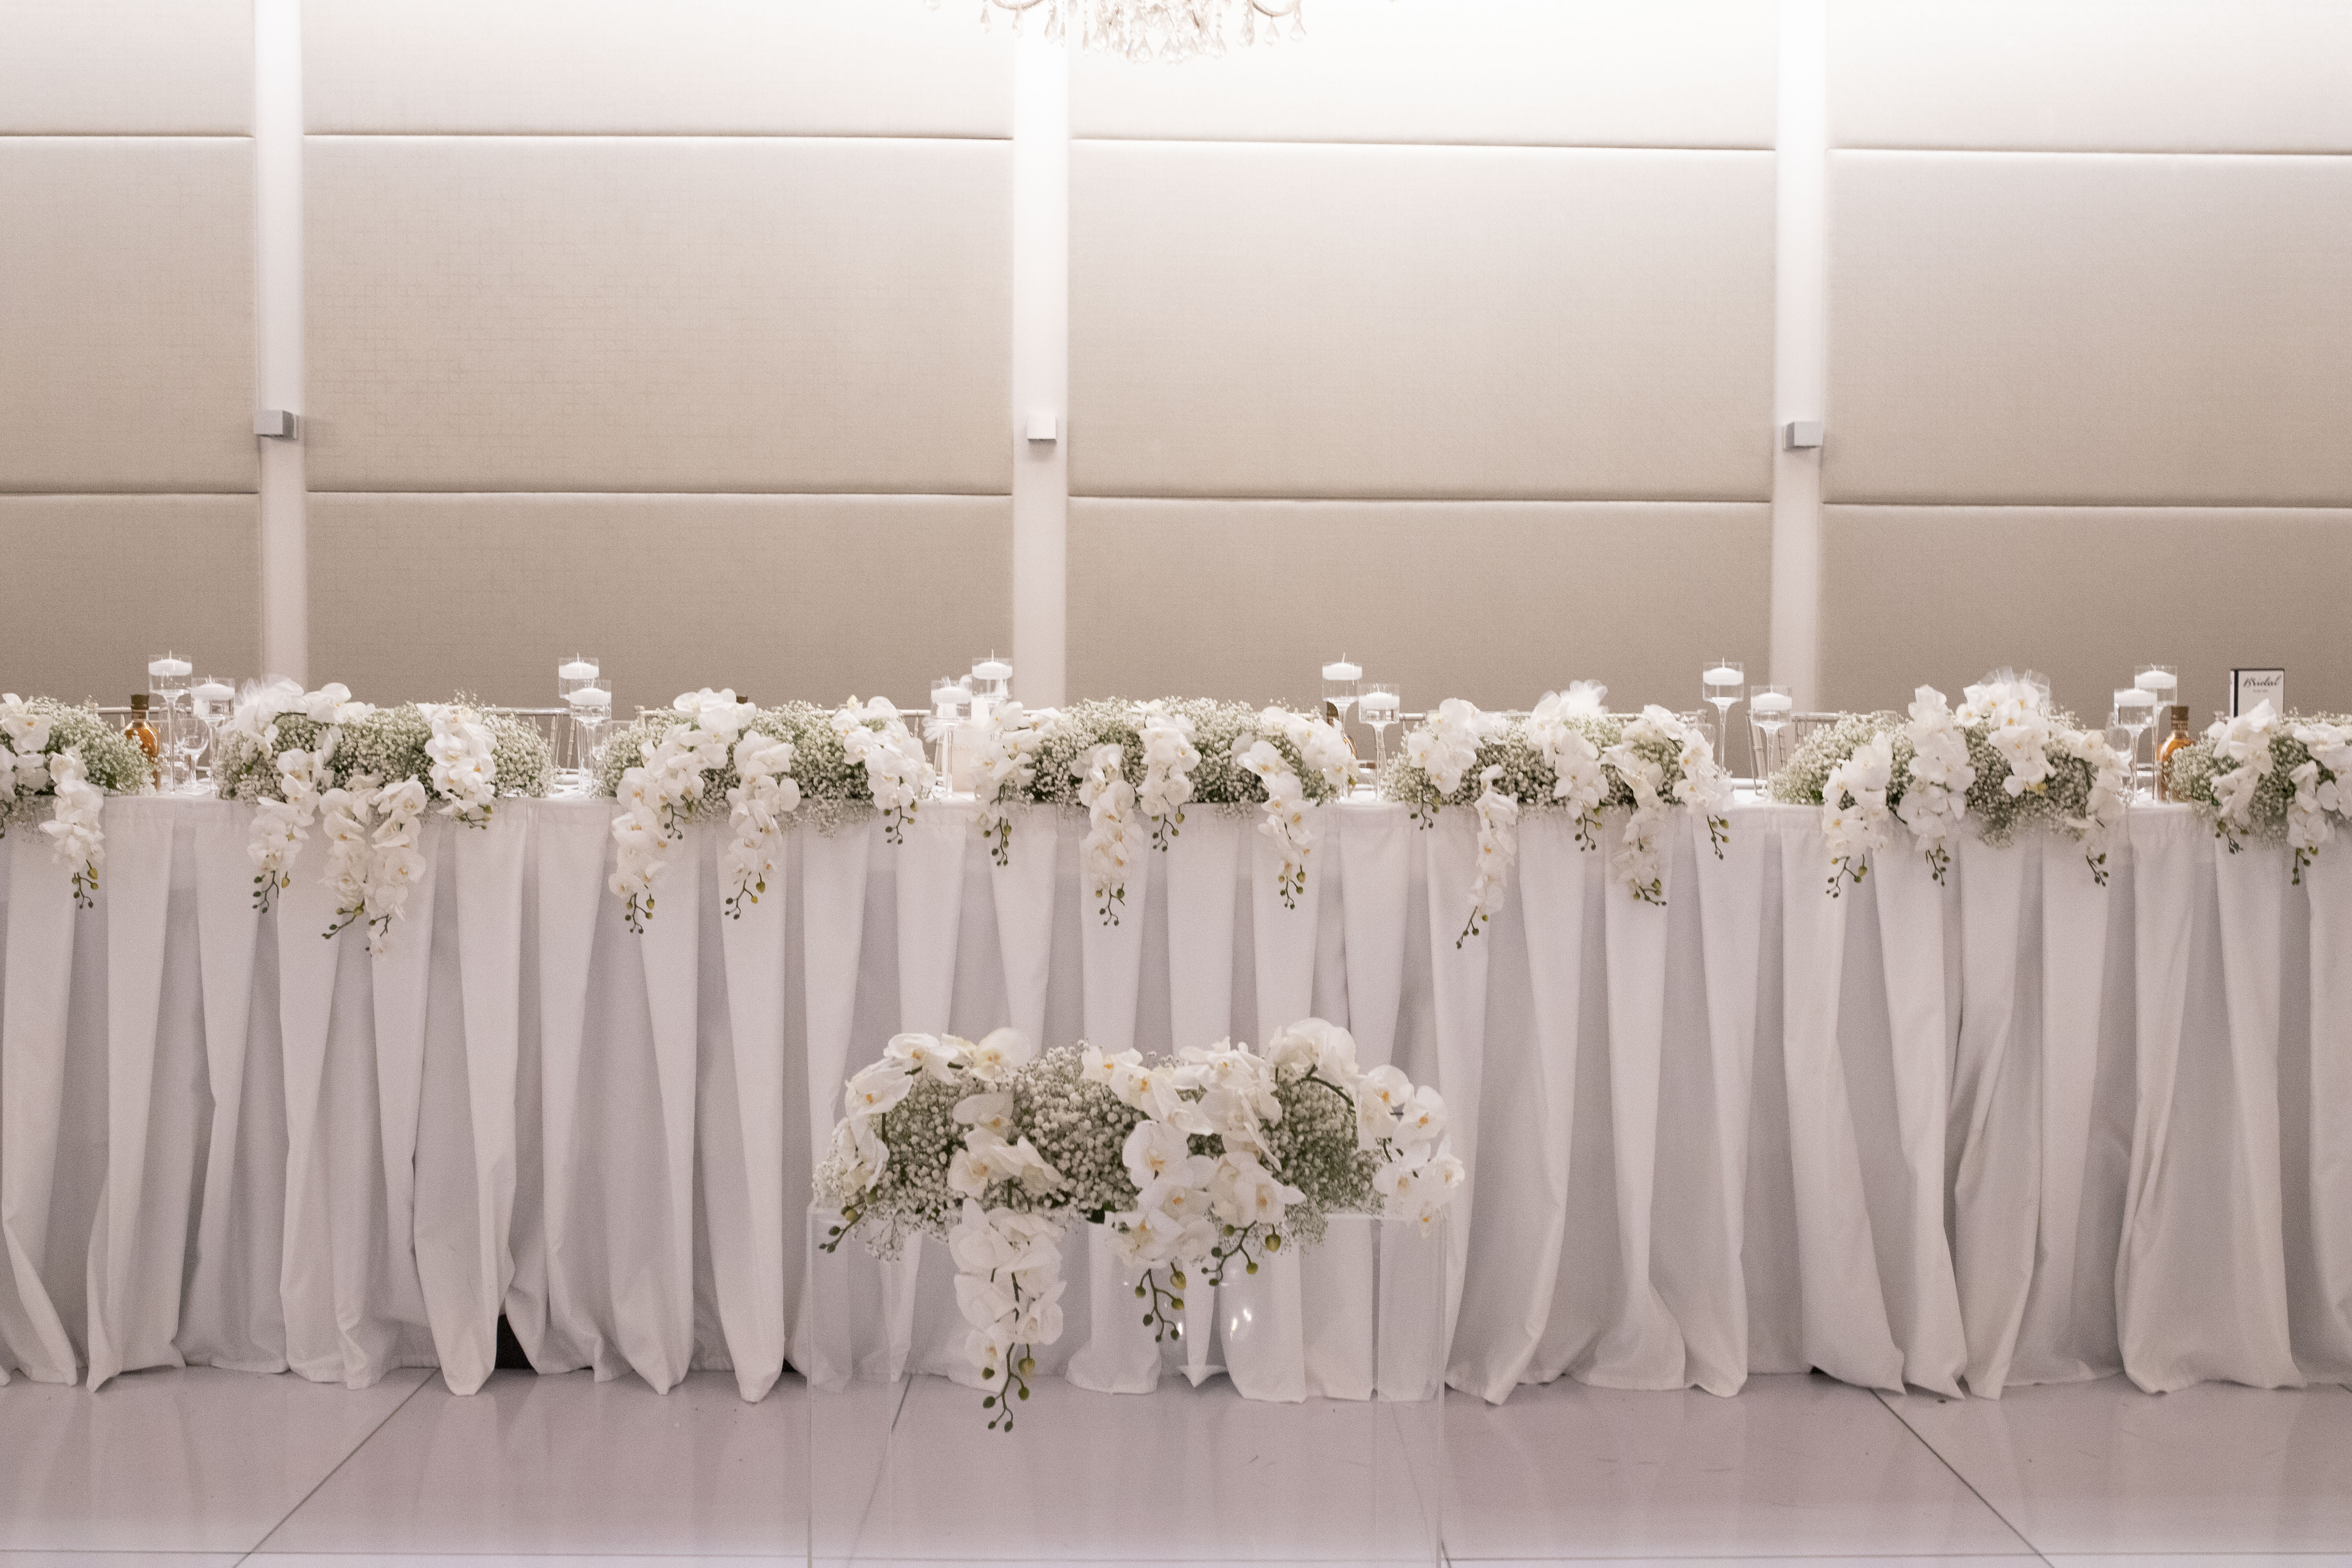 Tahlia & David Bridal Table